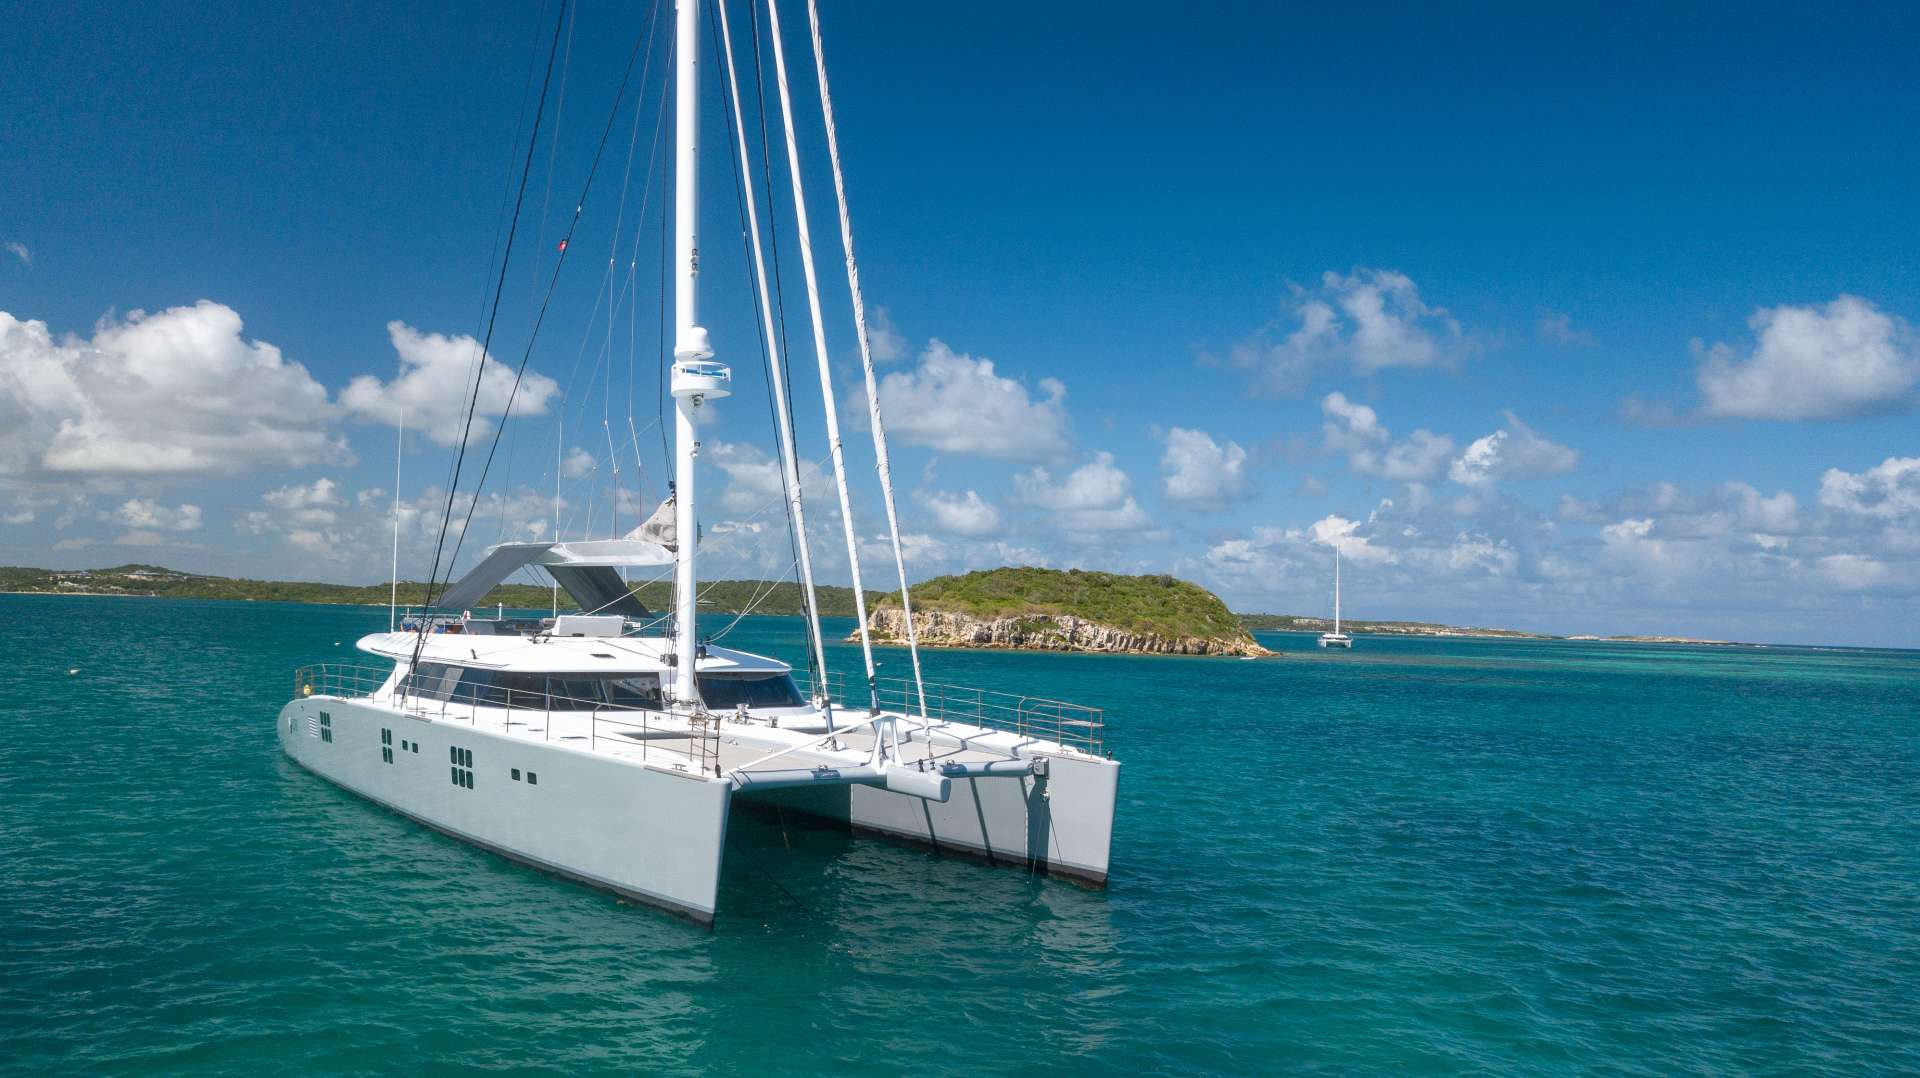 Cat Yacht 'Cat', 8 PAX, 6 Crew, 113.00 Ft, 34.00 Meters, Built 2010, Sunreef Yachts, Refit Year 2018